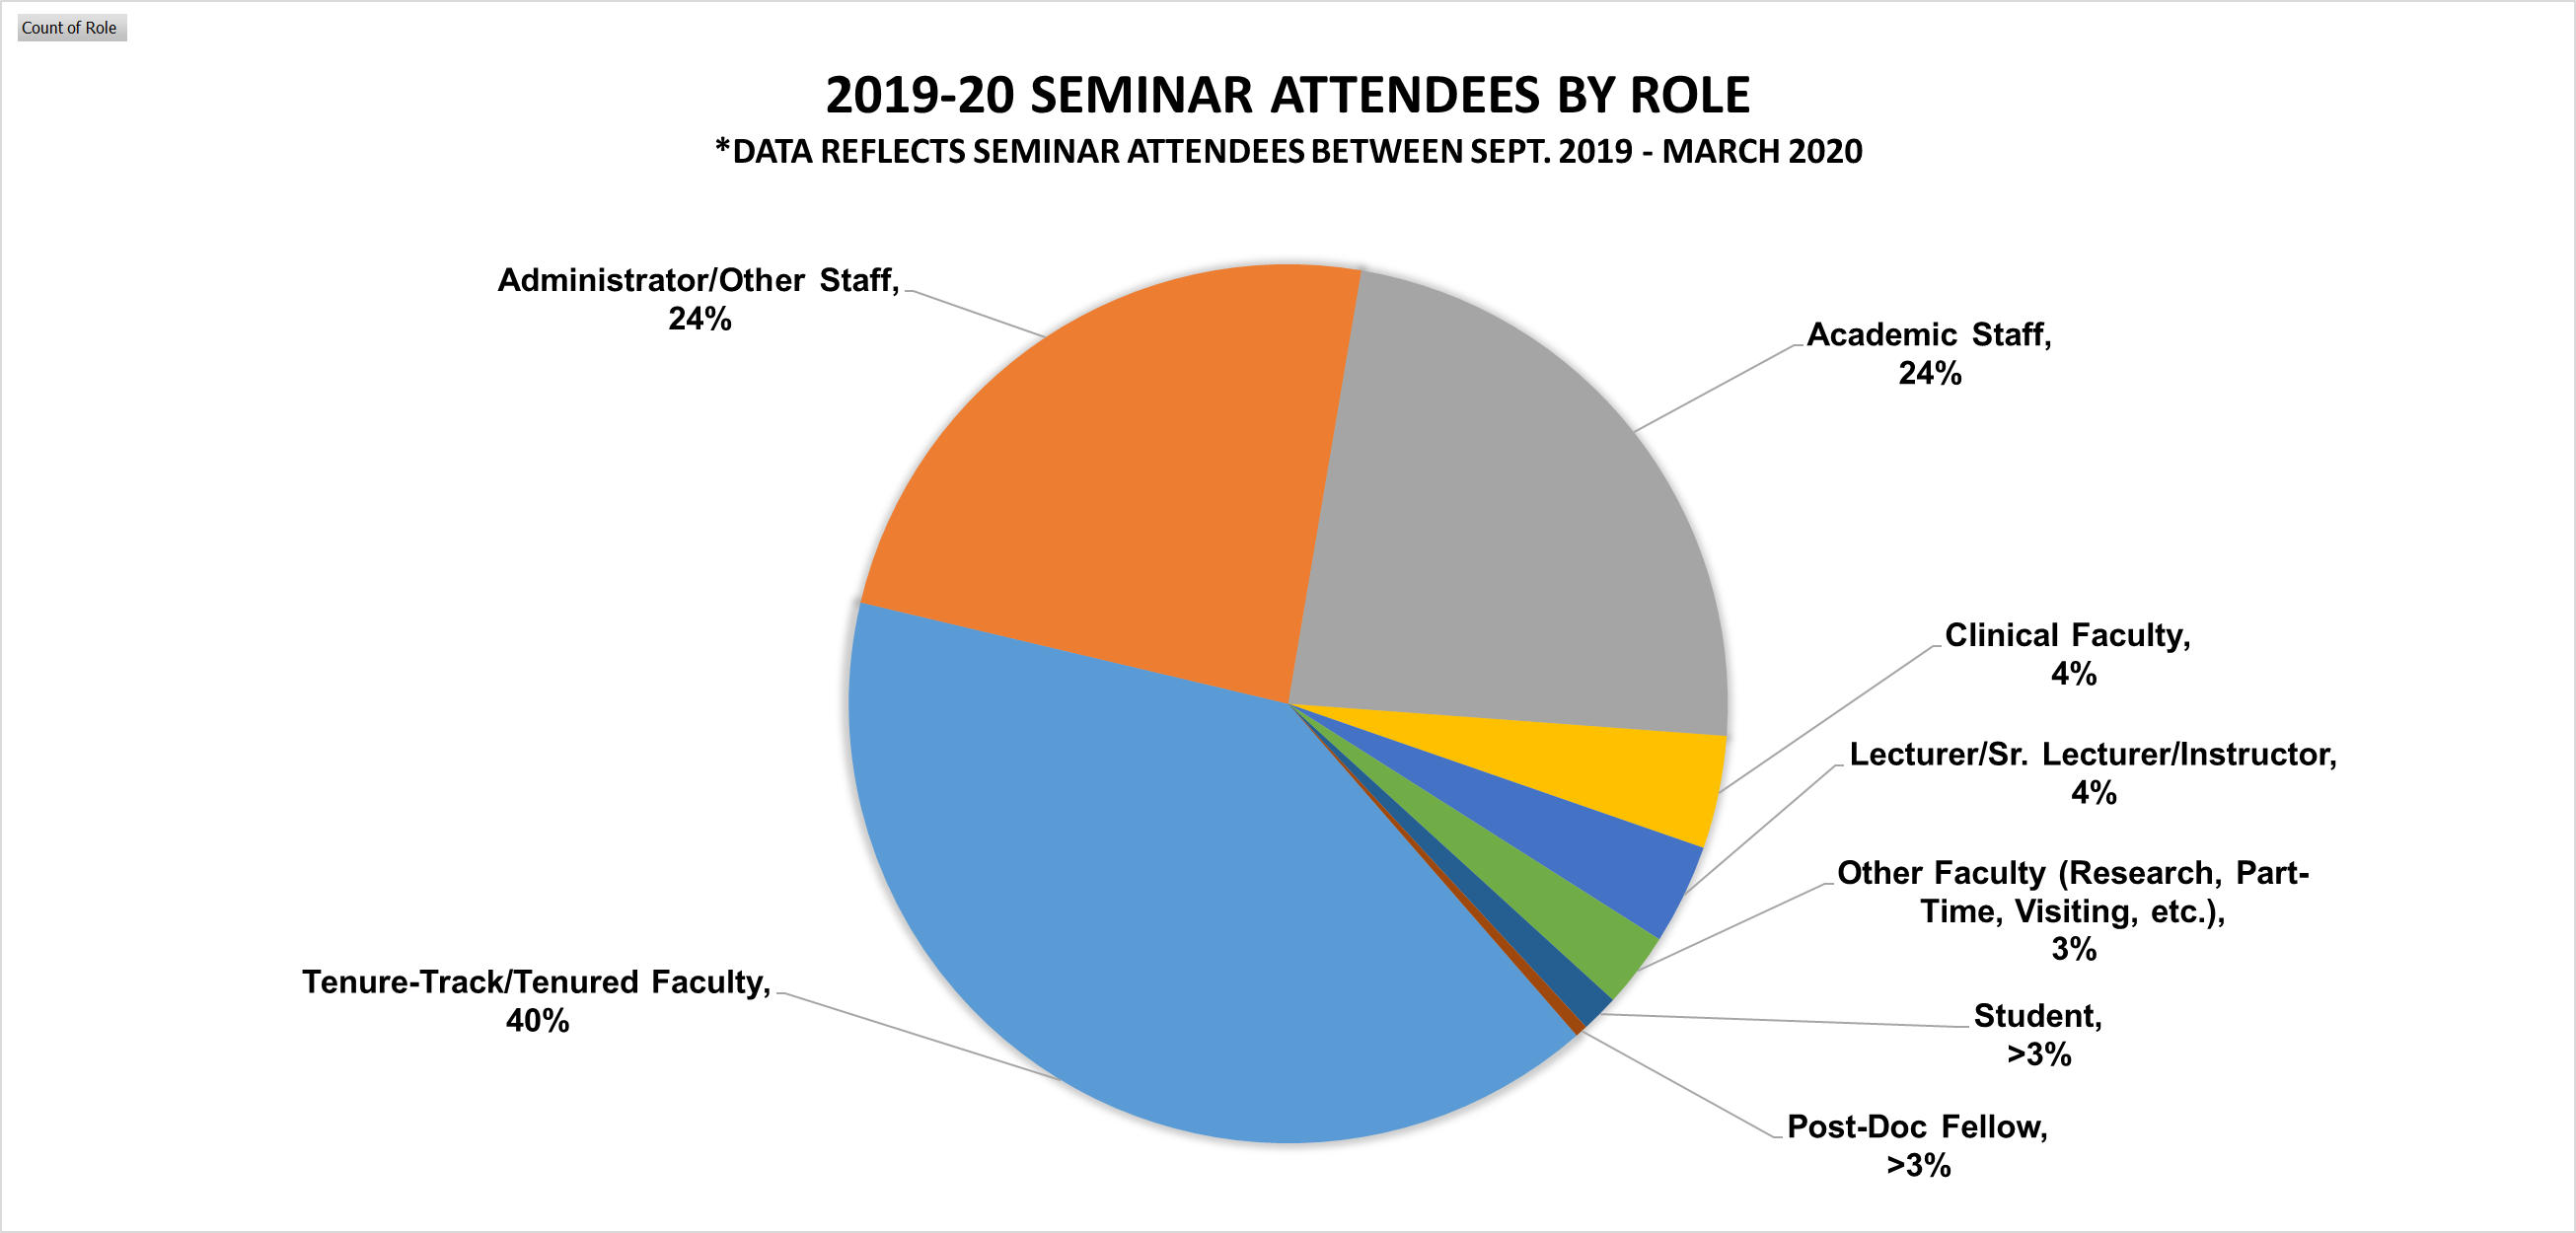 2019-2020 Professional Development Seminar Attendees by Role